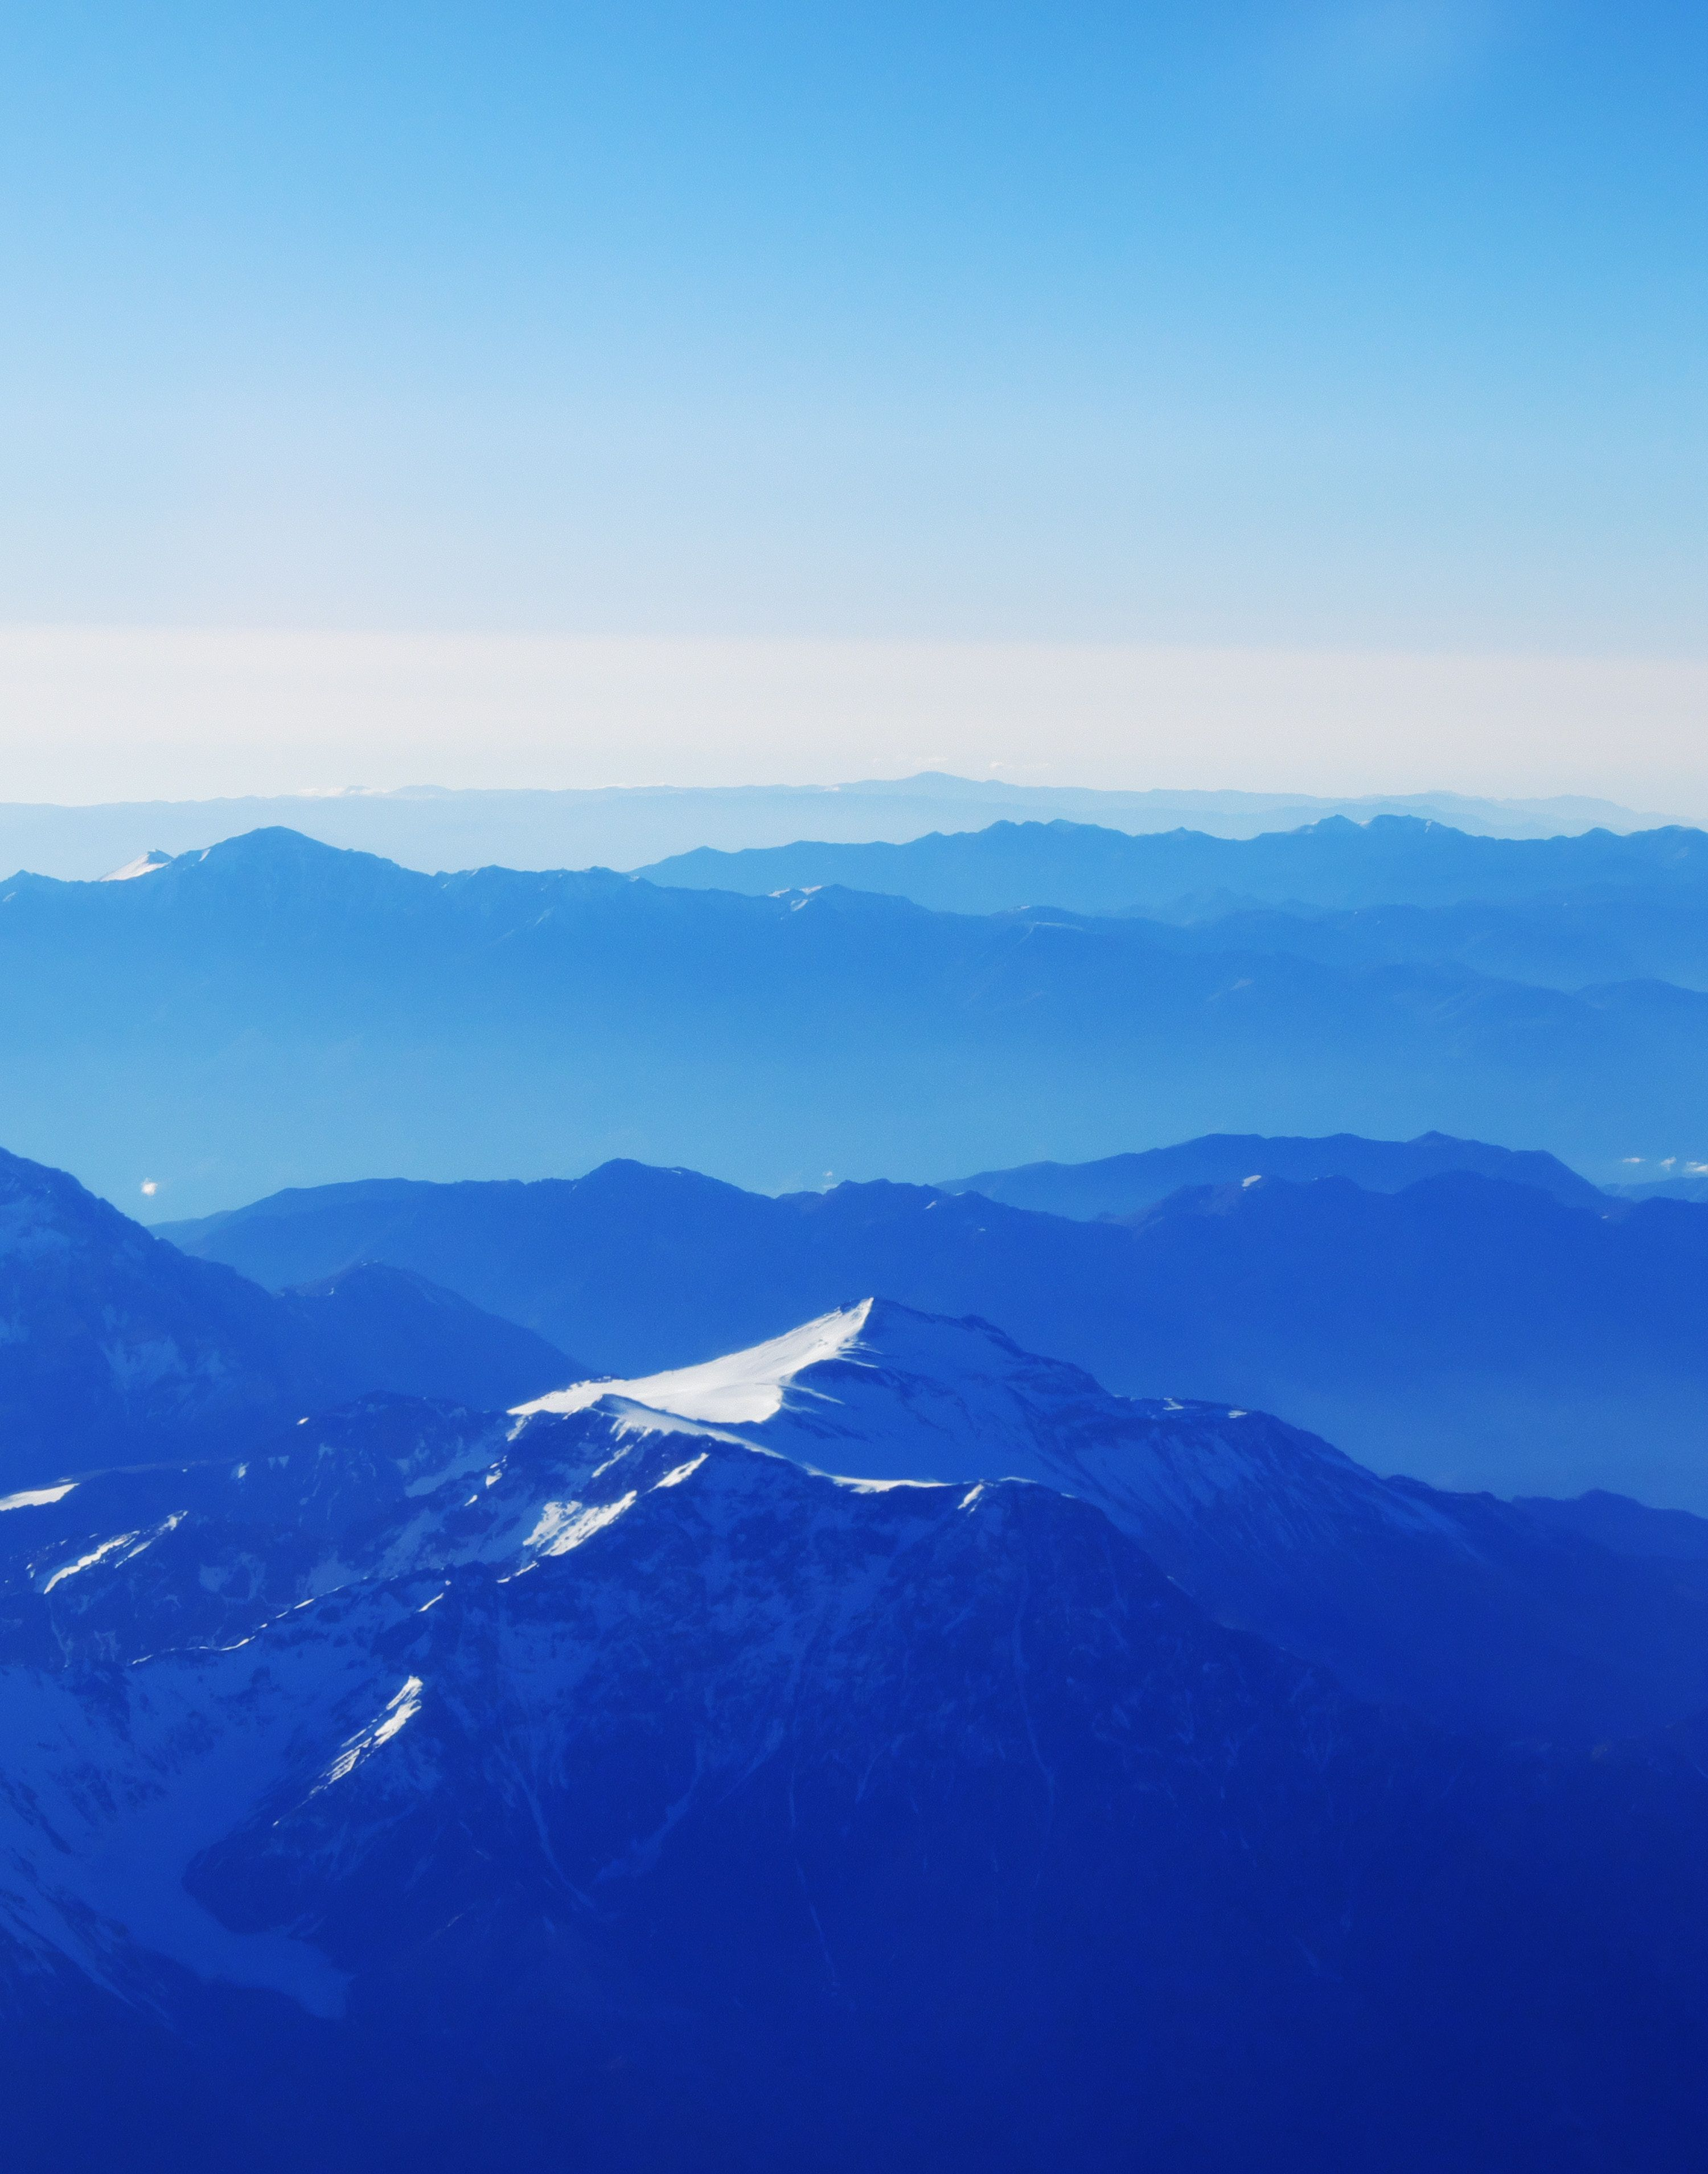 Use This Blue Aesthetic For Website Inspiration Mountain Landscape Photography Panoramic Photography Blue Aesthetic